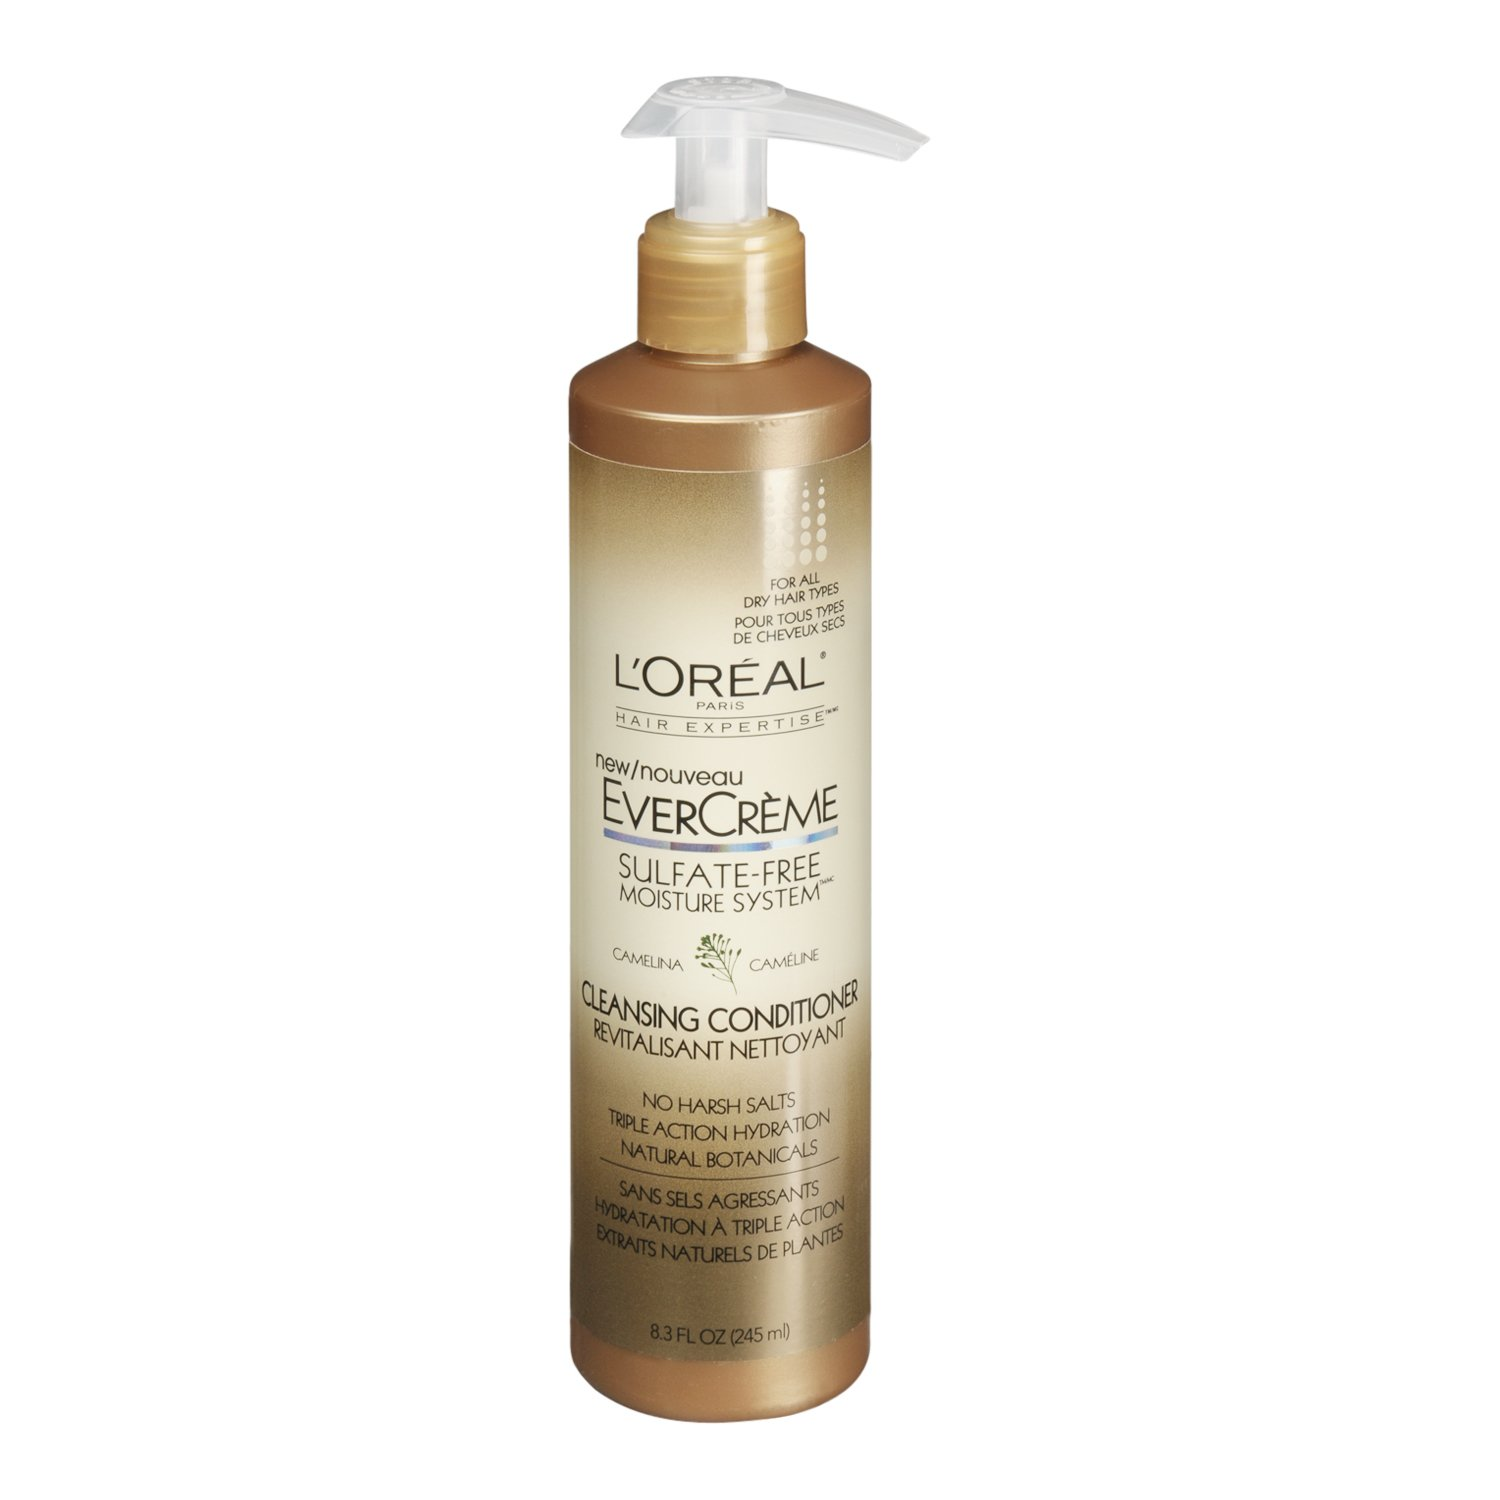 L'Oreal Paris EverCreme Sulfate-Free Moisture System Cleansing Conditioner, Camelina, 8.3 fl. Oz. by L'Oreal Paris